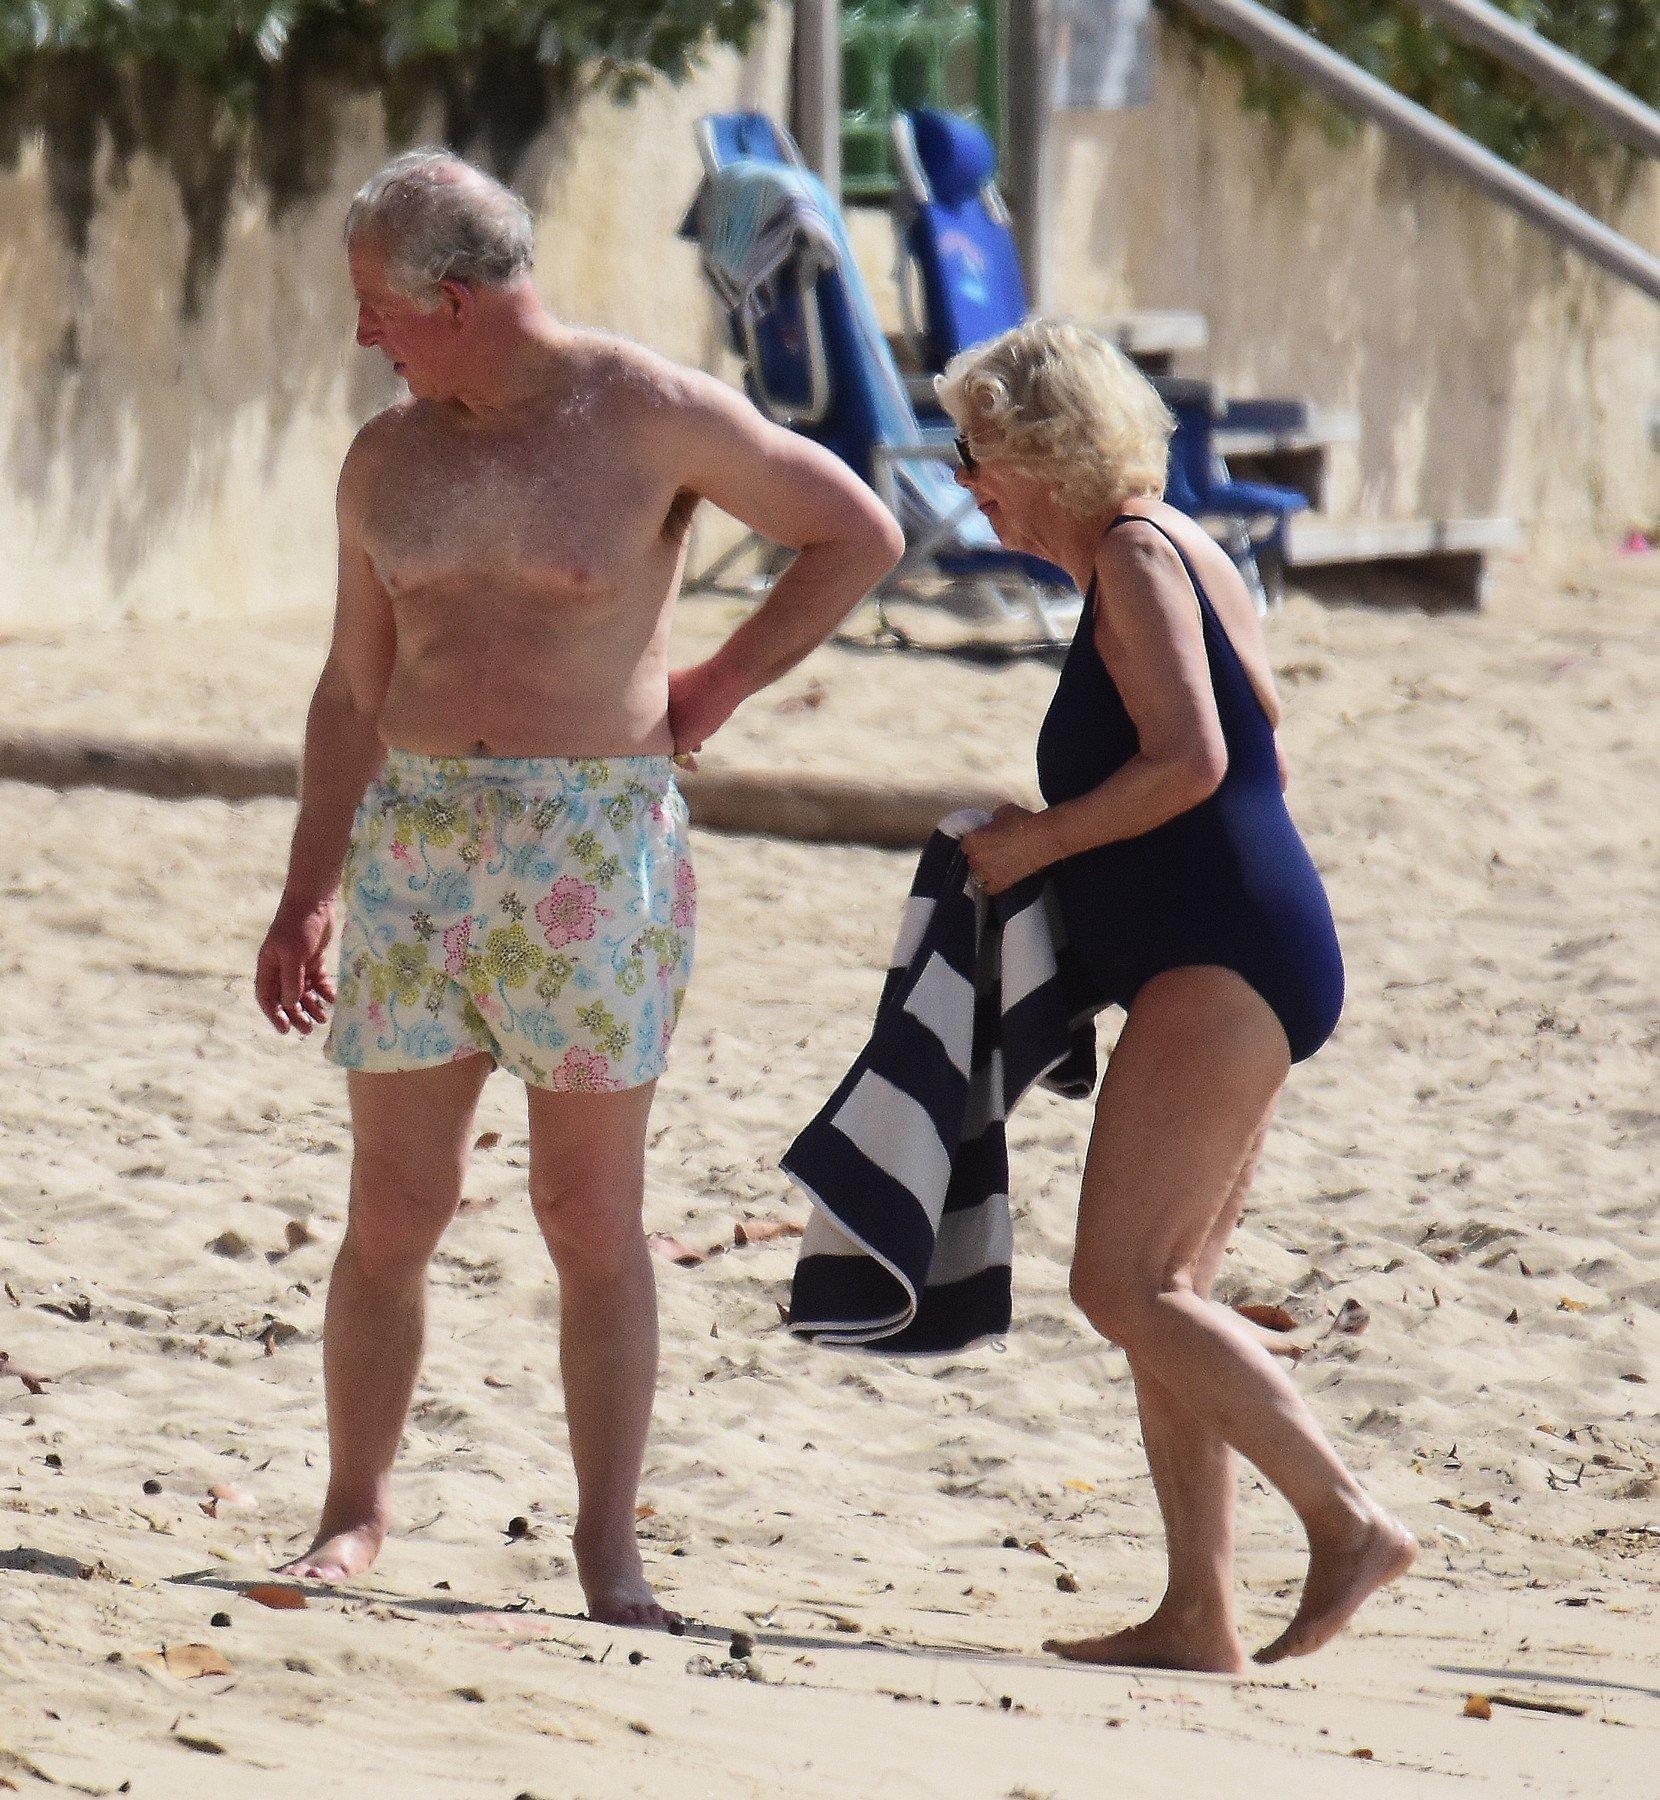 *PREMIUM EXCLUSIVE* Prince Charles and wife Camilla, Duchess of Cornwall,  pictured on the beach in Barbados. The Prince of Wales, 70, showed off his trim frame in floral trunks while Camilla, 71, wore an aqua-blue one-piece swimsuit. Camilla and Charles are touring the Caribbean representing the Queen at the behest of the Foreign Office. The highlight of their trip is a four-day tour of Cuba beginning on March 24 - the first by members of the monarchy. 18 Mar 2019, Image: 420540148, License: Rights-managed, Restrictions: World Rights, Model Release: no, Credit line: Profimedia, Mega Agency